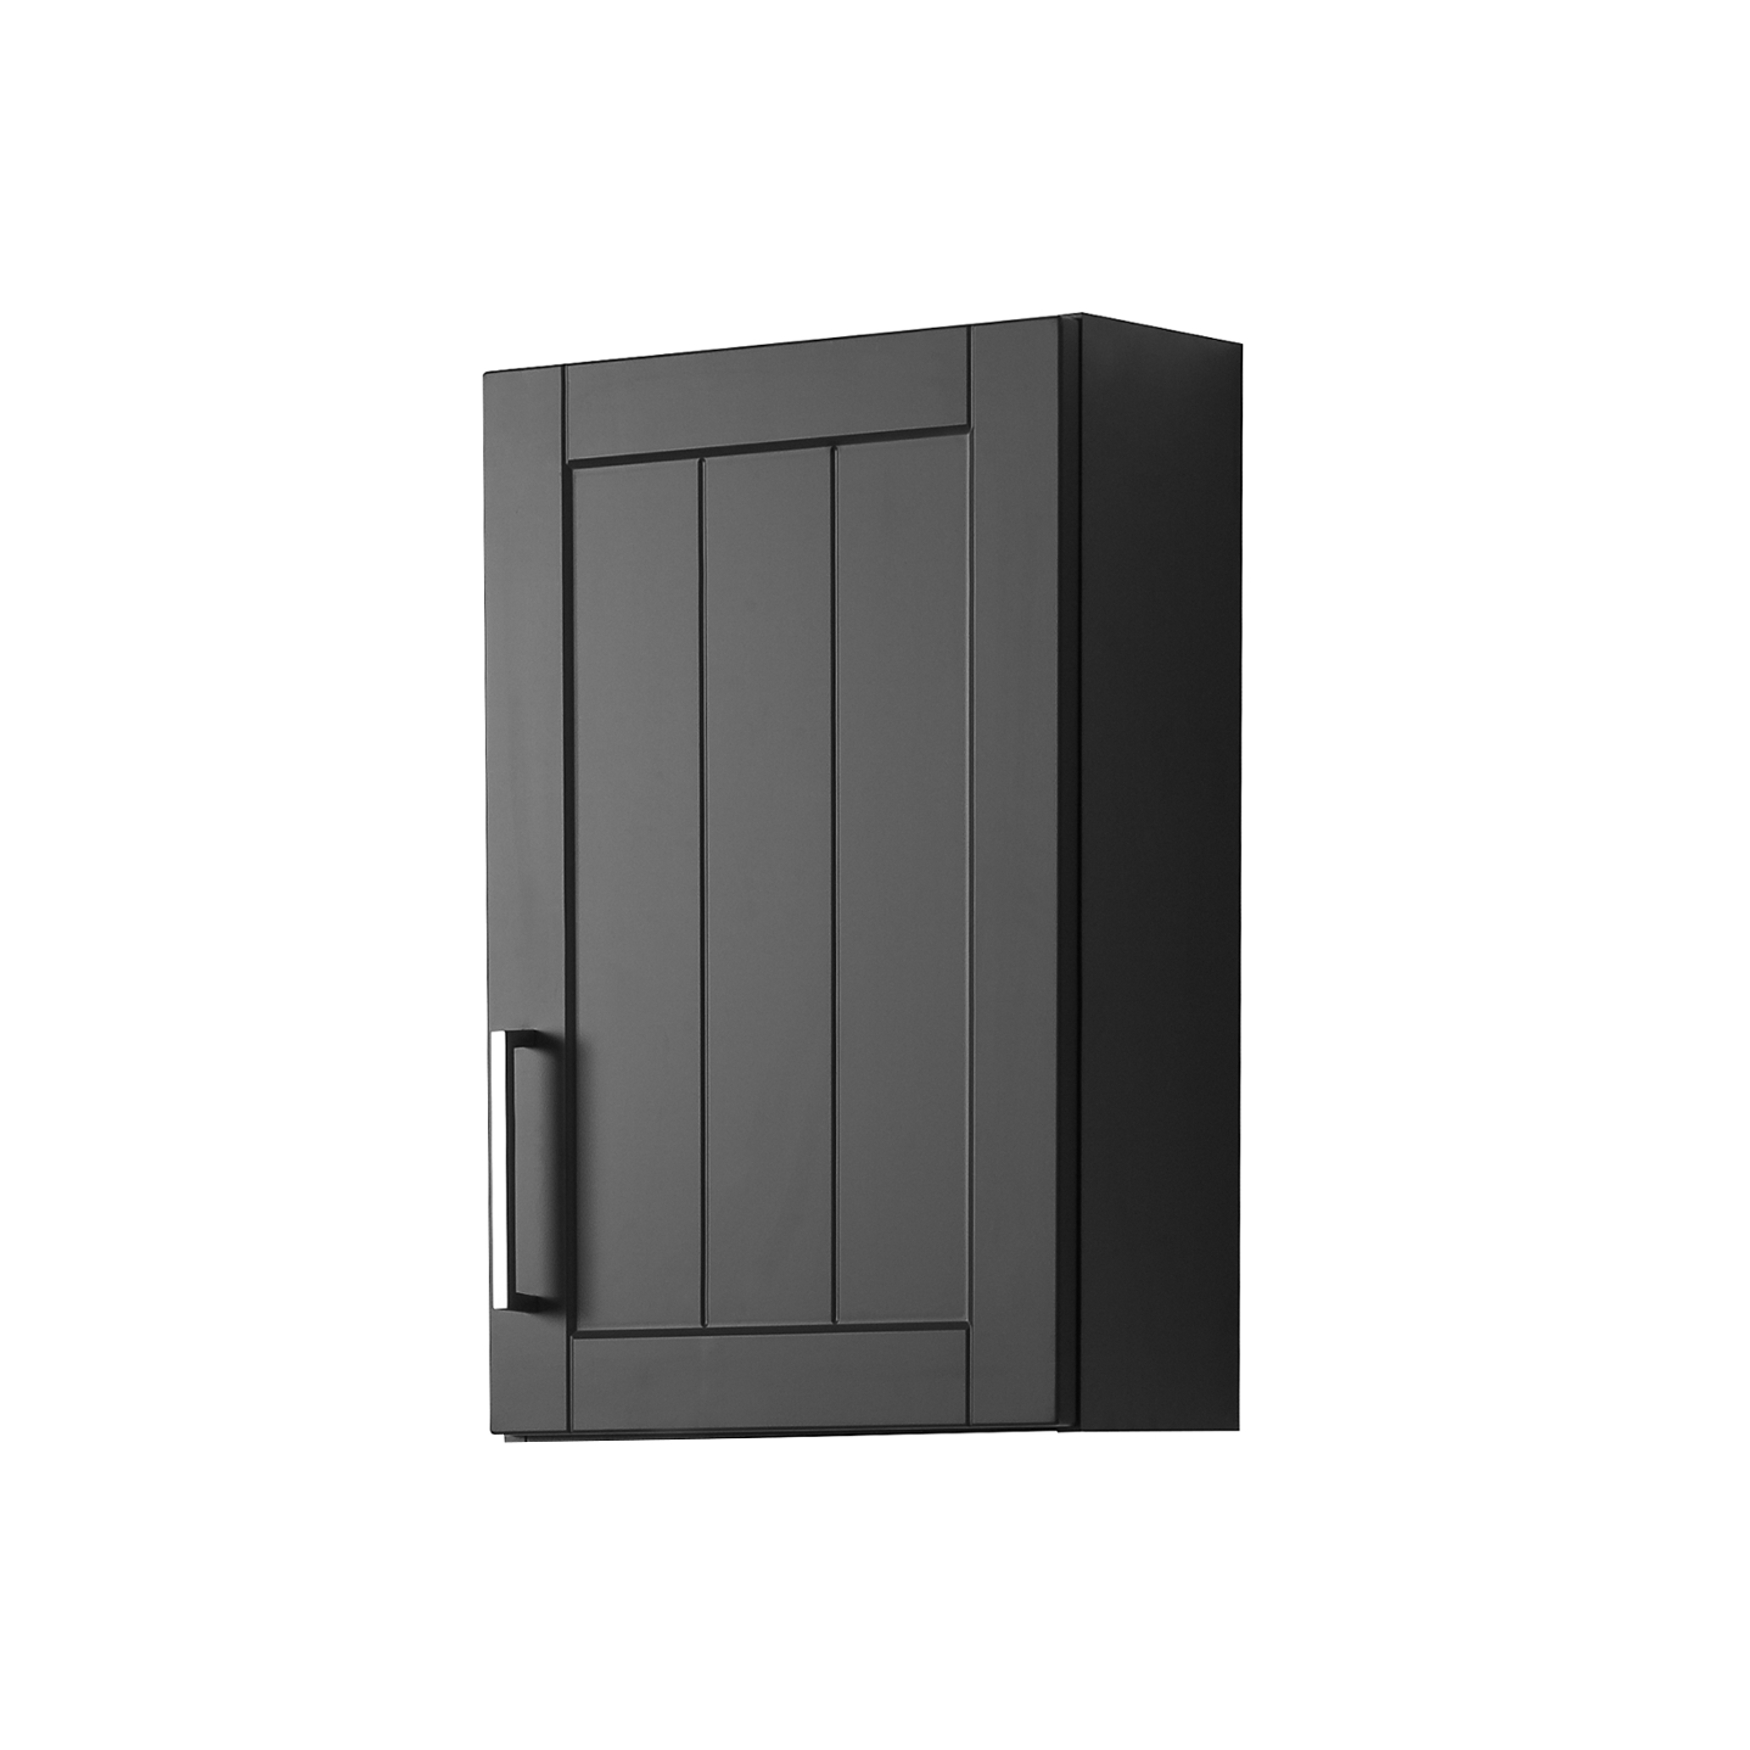 bad h ngeschrank barolo 1 t rig 40 cm breit grau matt bad bad h ngeschr nke. Black Bedroom Furniture Sets. Home Design Ideas